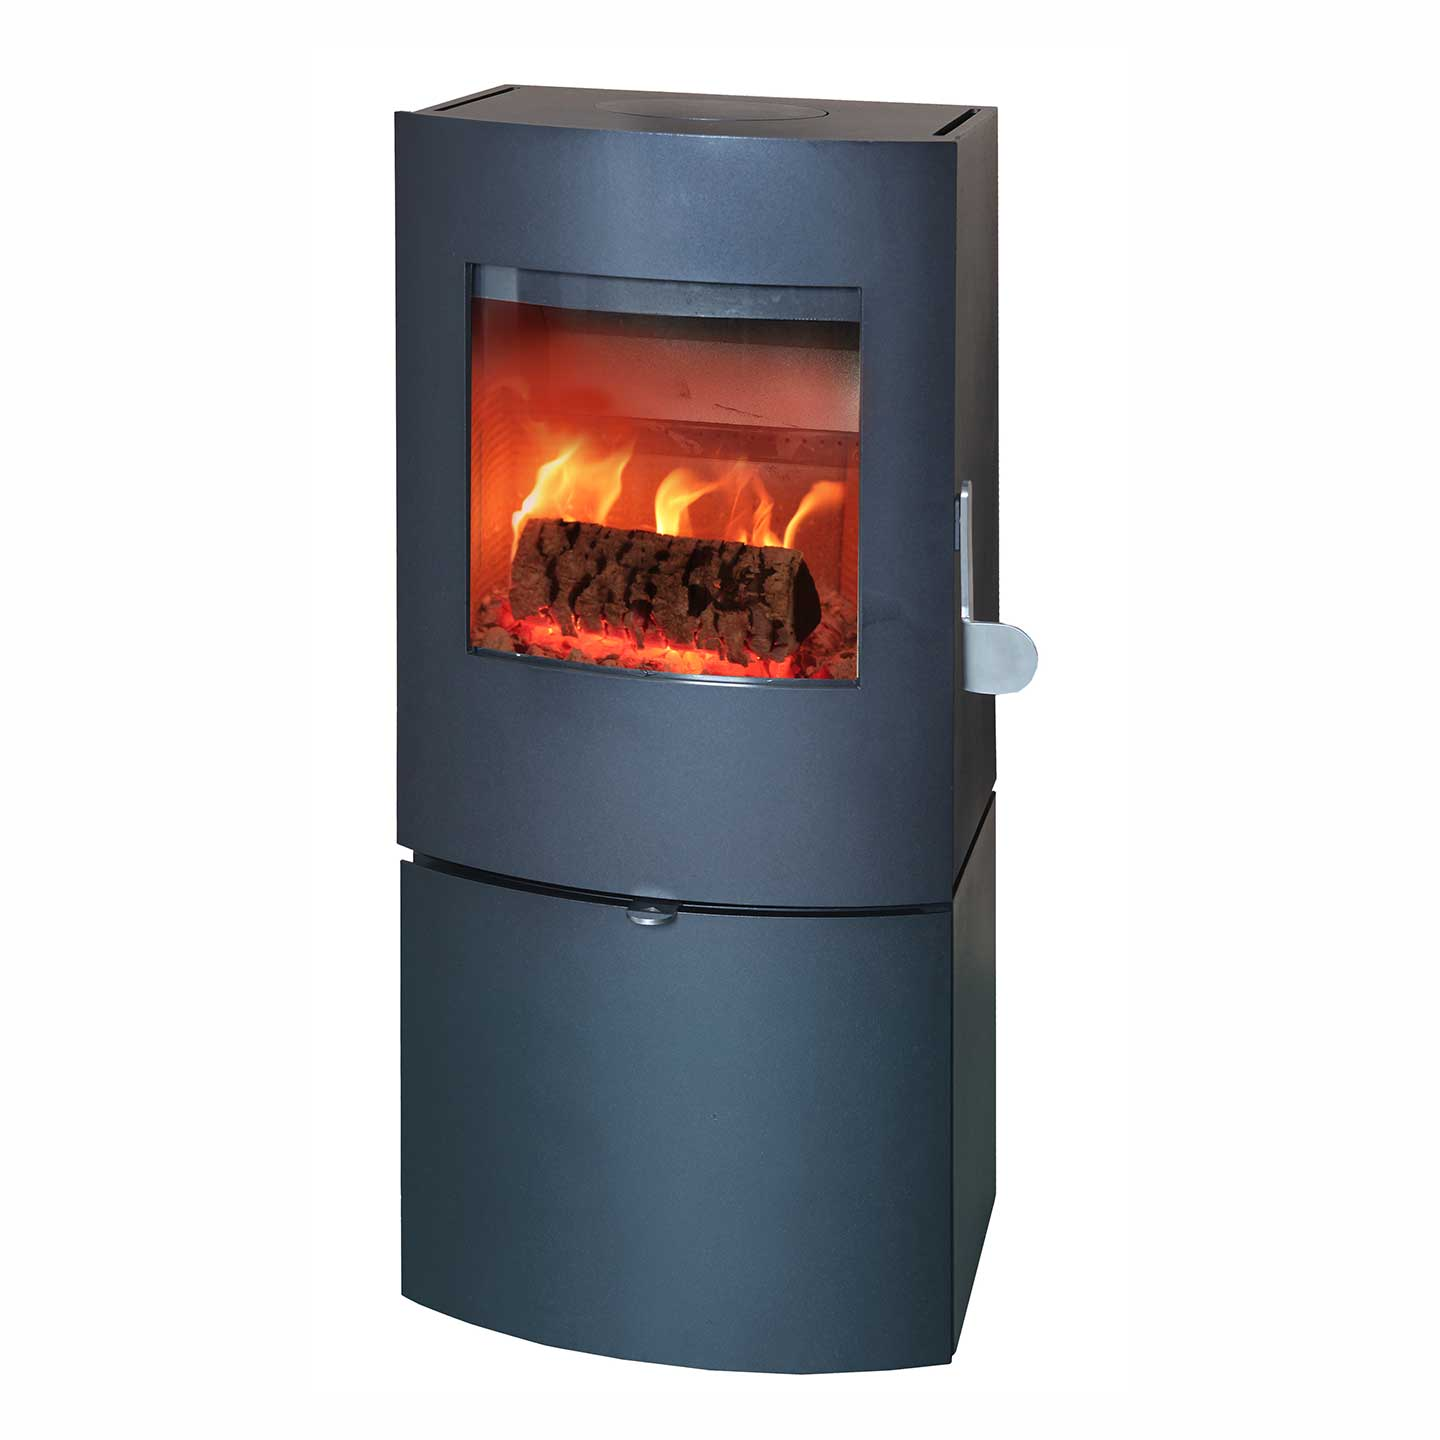 Morso S11 43 Multi Fuel Amp Wood Burning Stove Approved